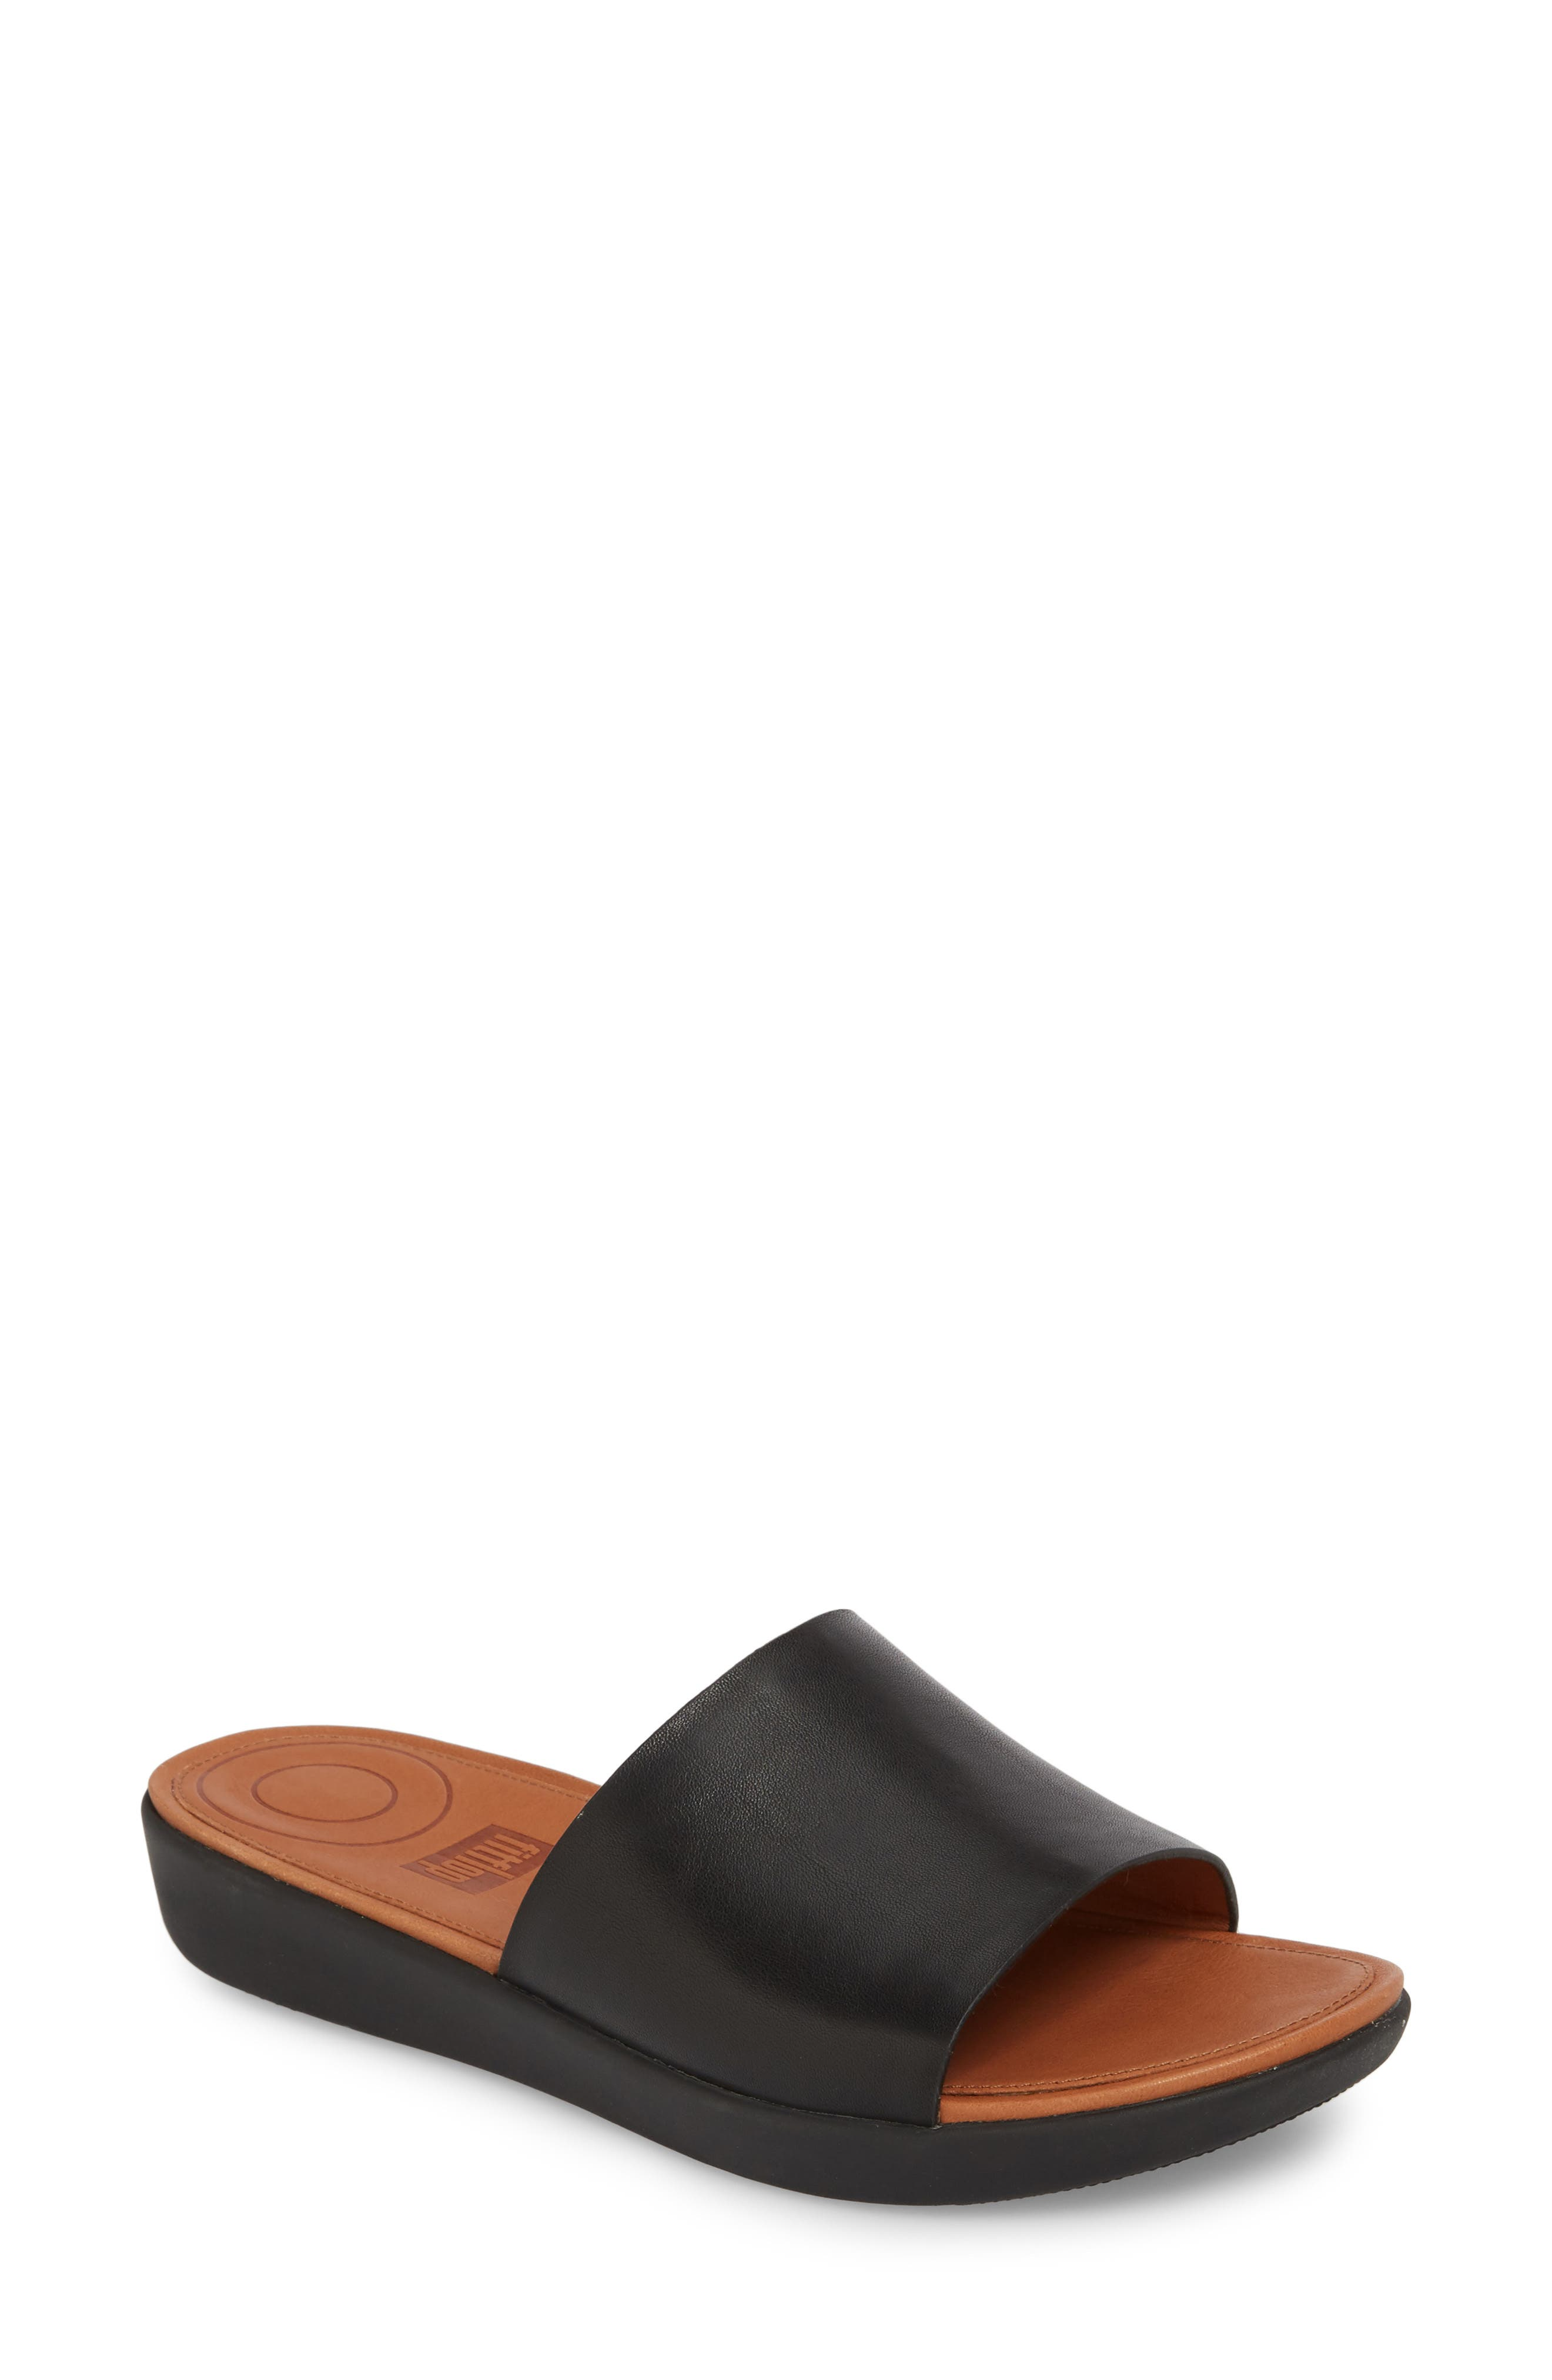 Sola Sandal, Main, color, BLACK LEATHER